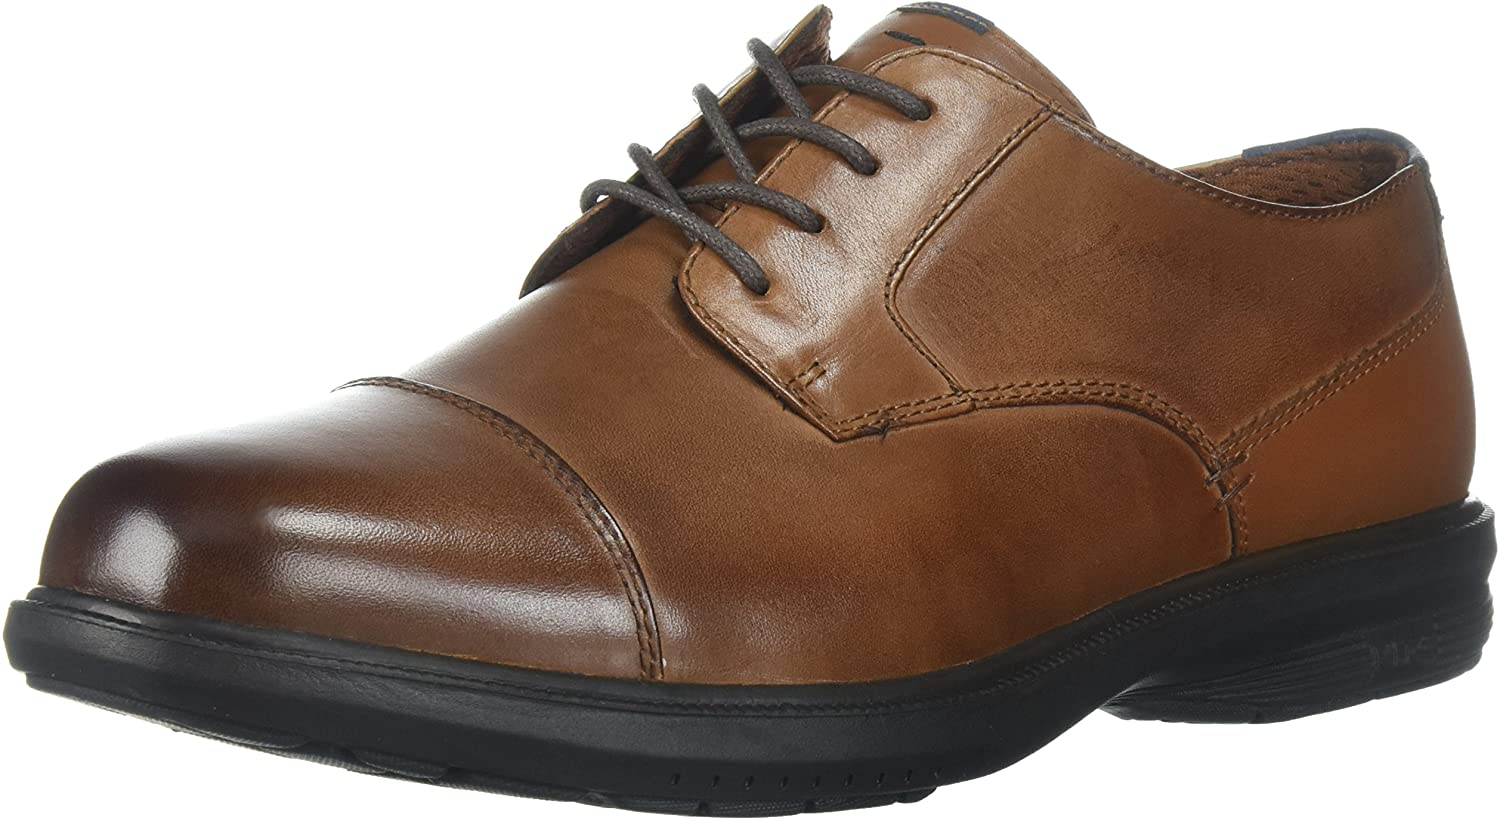 Nunn Bush Men's Maretto Cap Toe Oxford with Kore Slip Resistant Comfort Technology